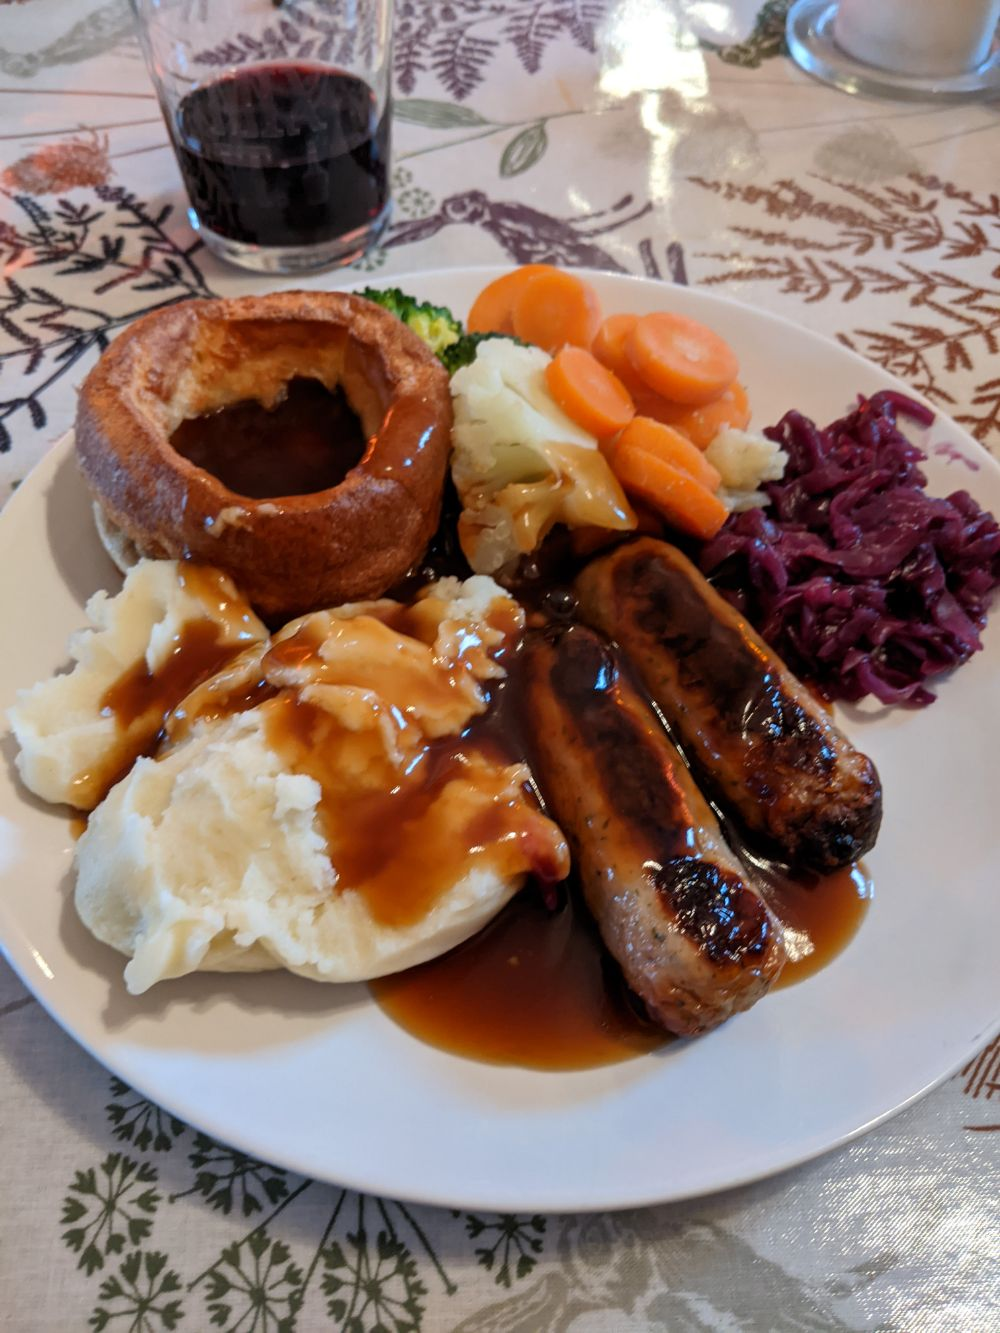 A plate with a beef dripping Yorkshire pudding, mashed potatoes, bacon and maple syrup sausages, red cabbage, carrots, cauliflower and broccoli, all covered in gravy, with a glass of red wine